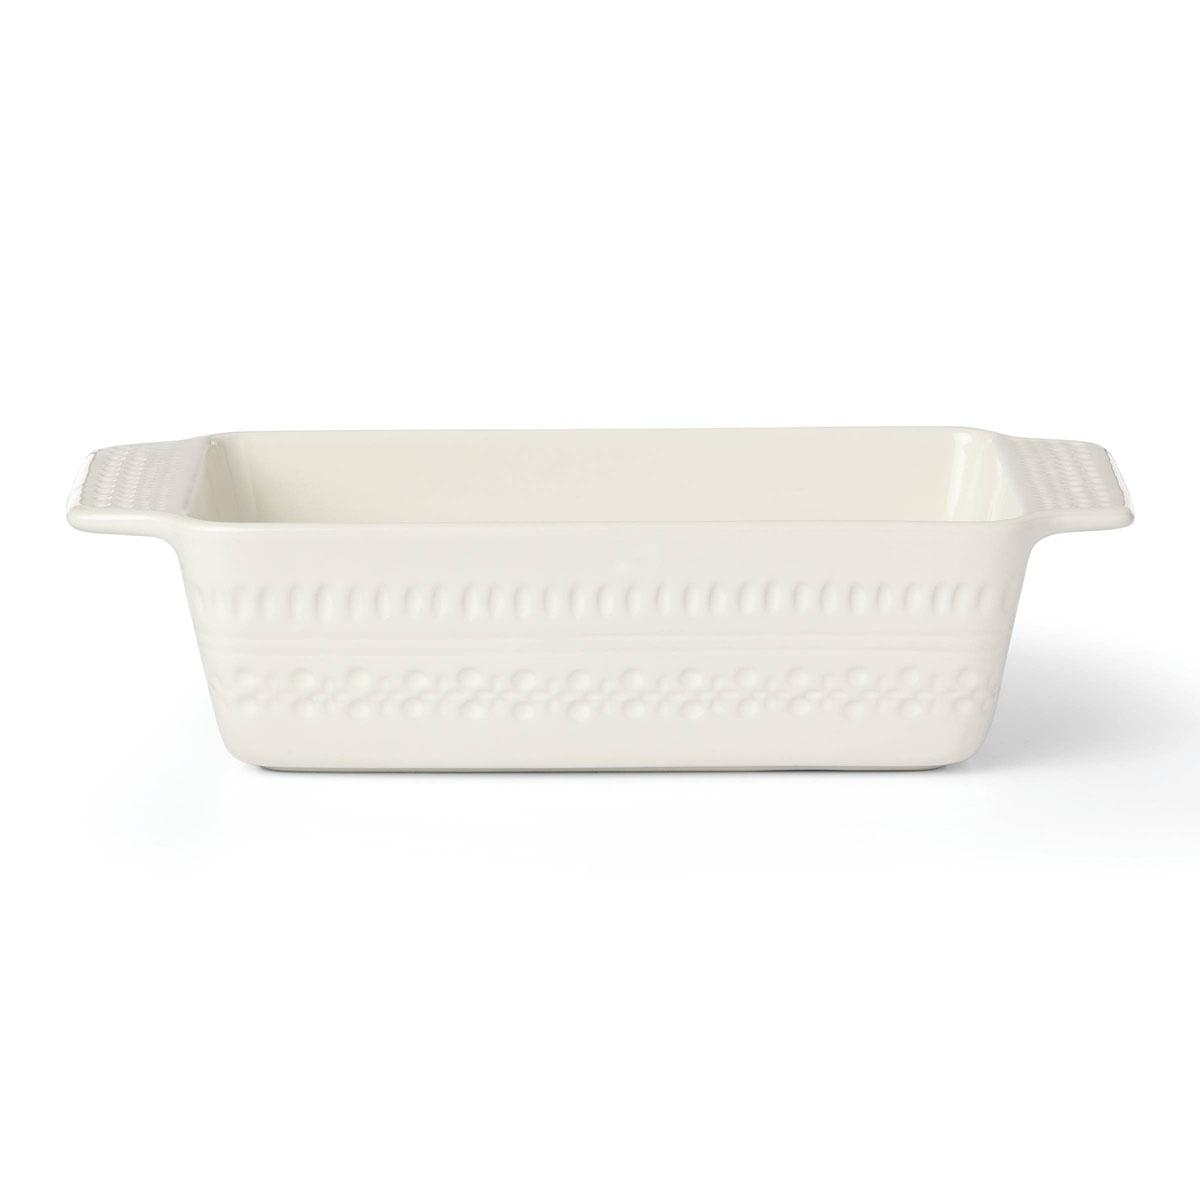 kate spade new york Lenox Stoneware Willow Drive Cream Loaf Pan